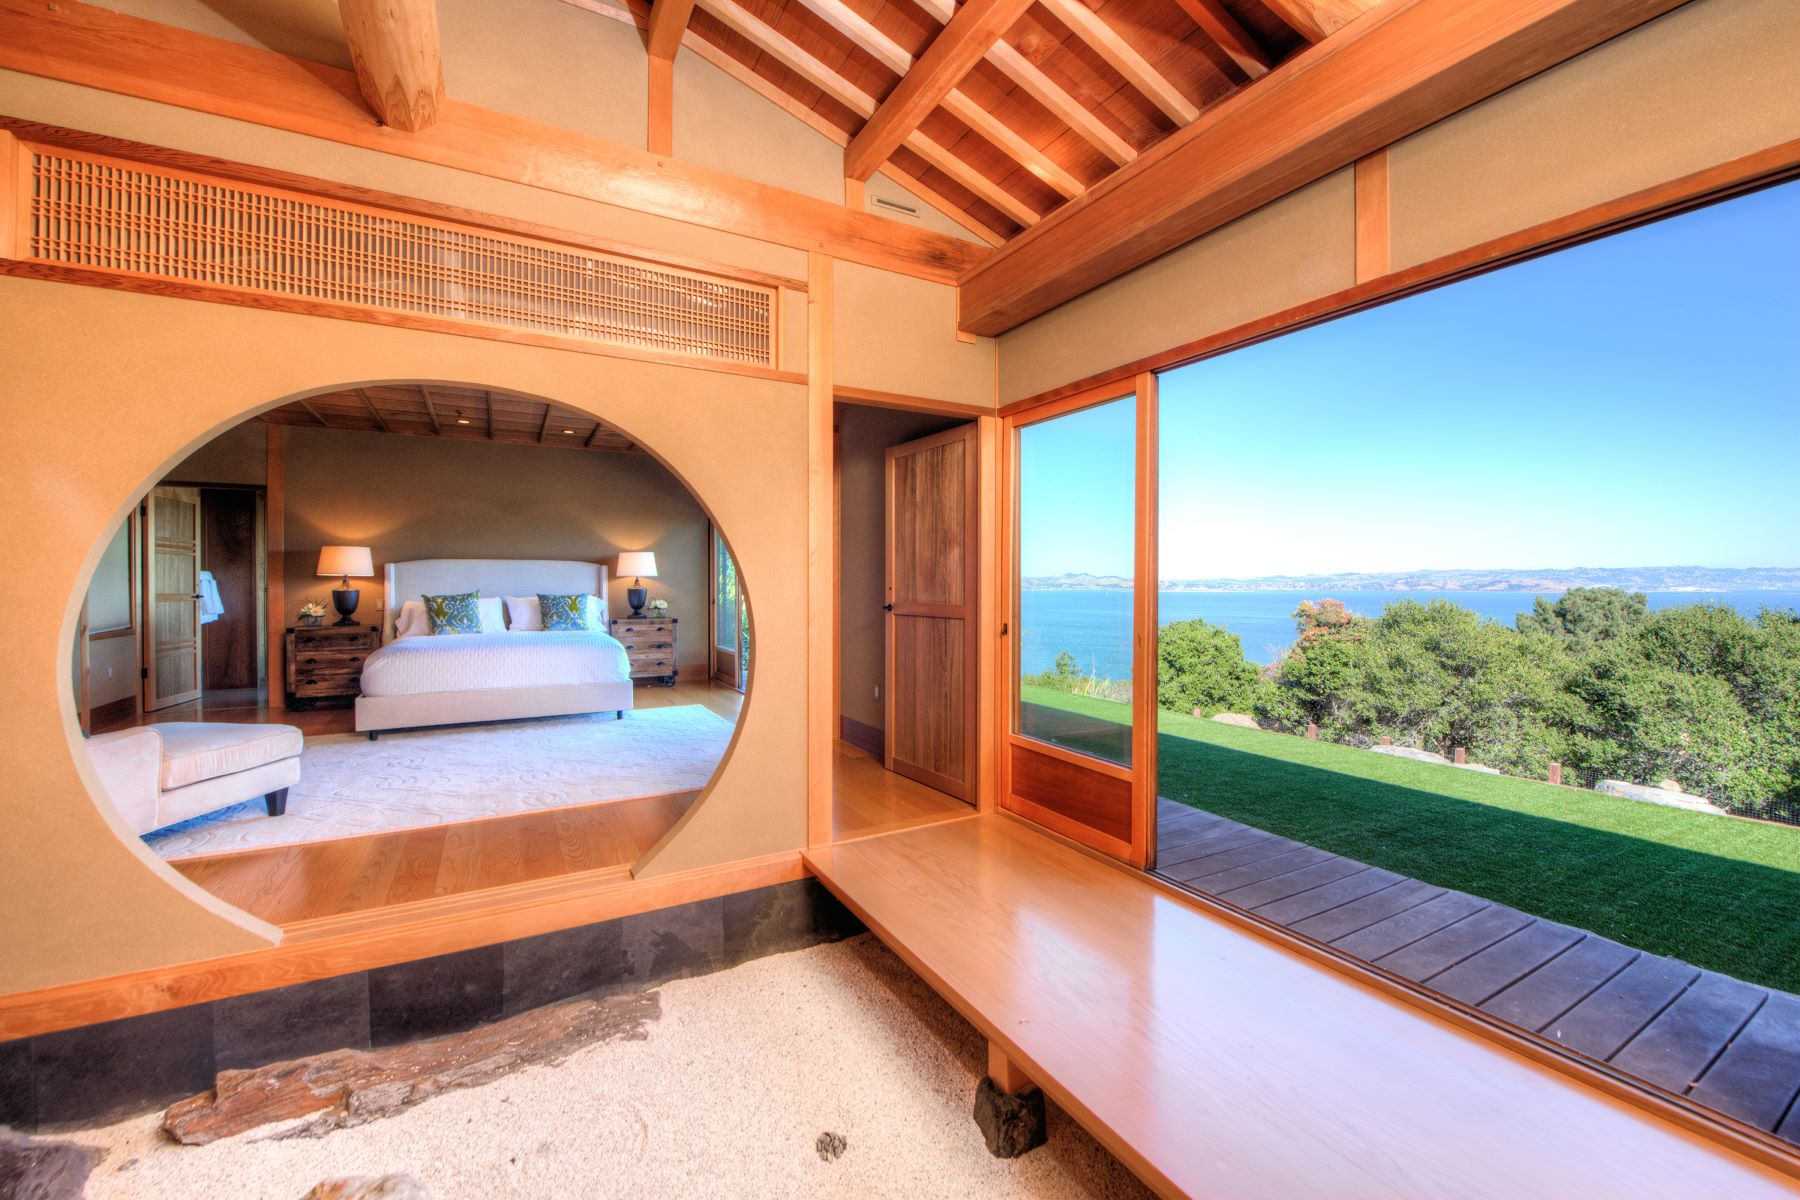 Additional photo for property listing at Artful Japanese Living 63 Norman Way Tiburon, California 94920 United States